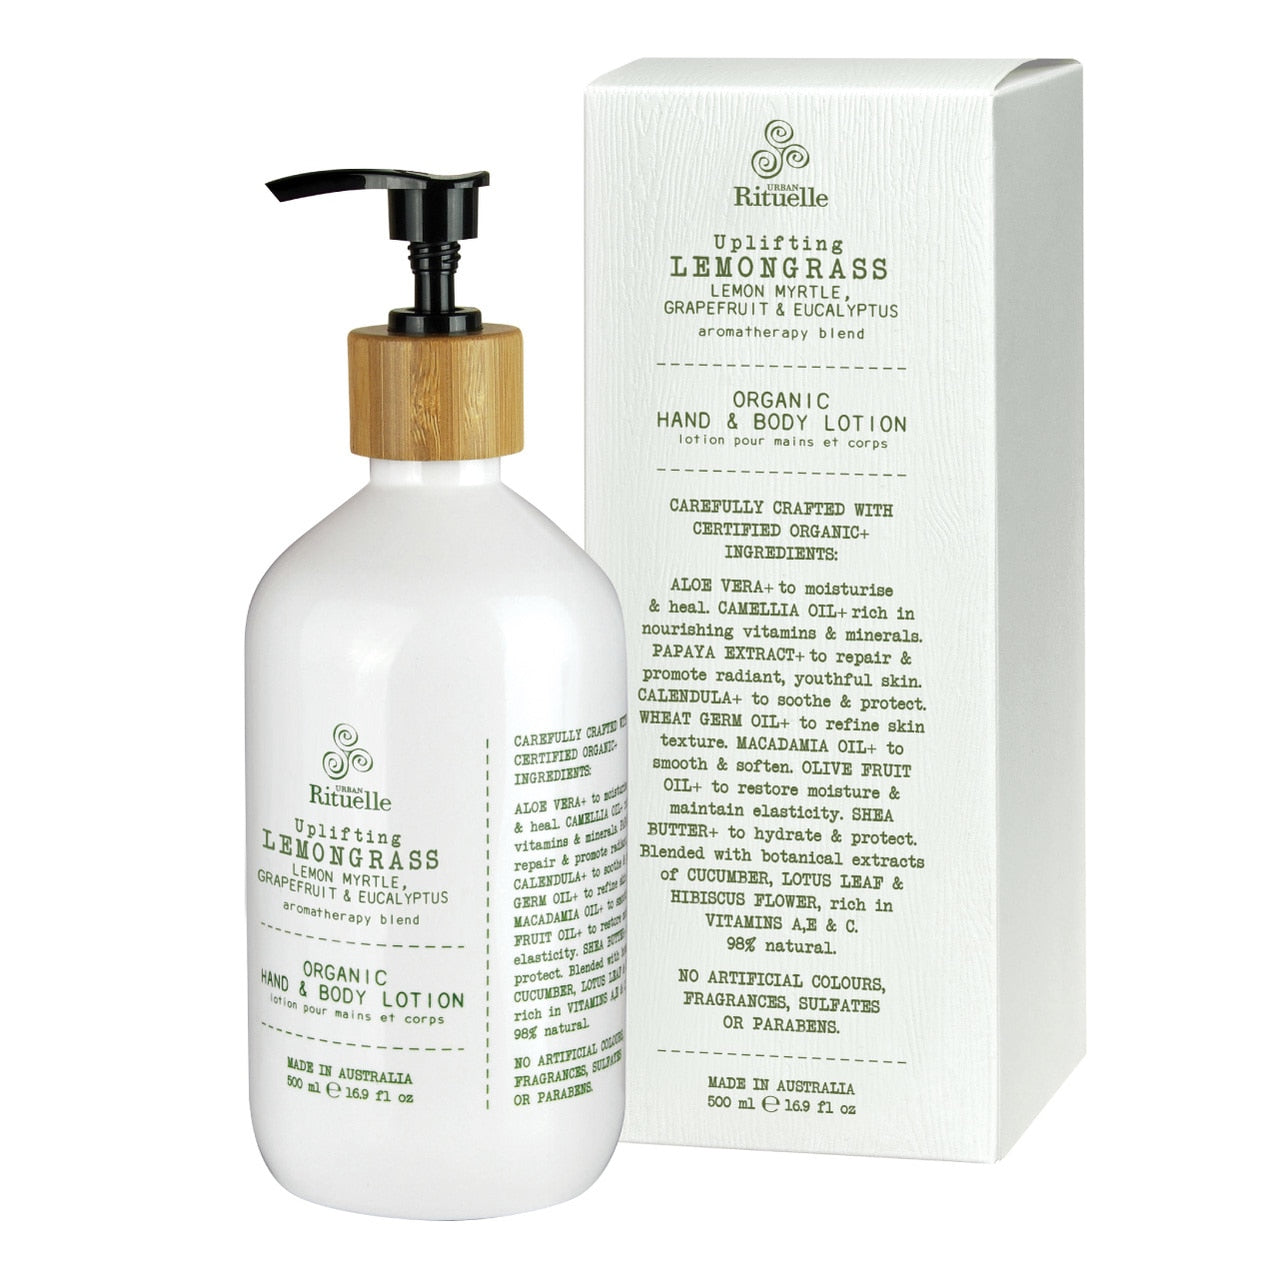 Flourish Organics - Hand & Body Lotion